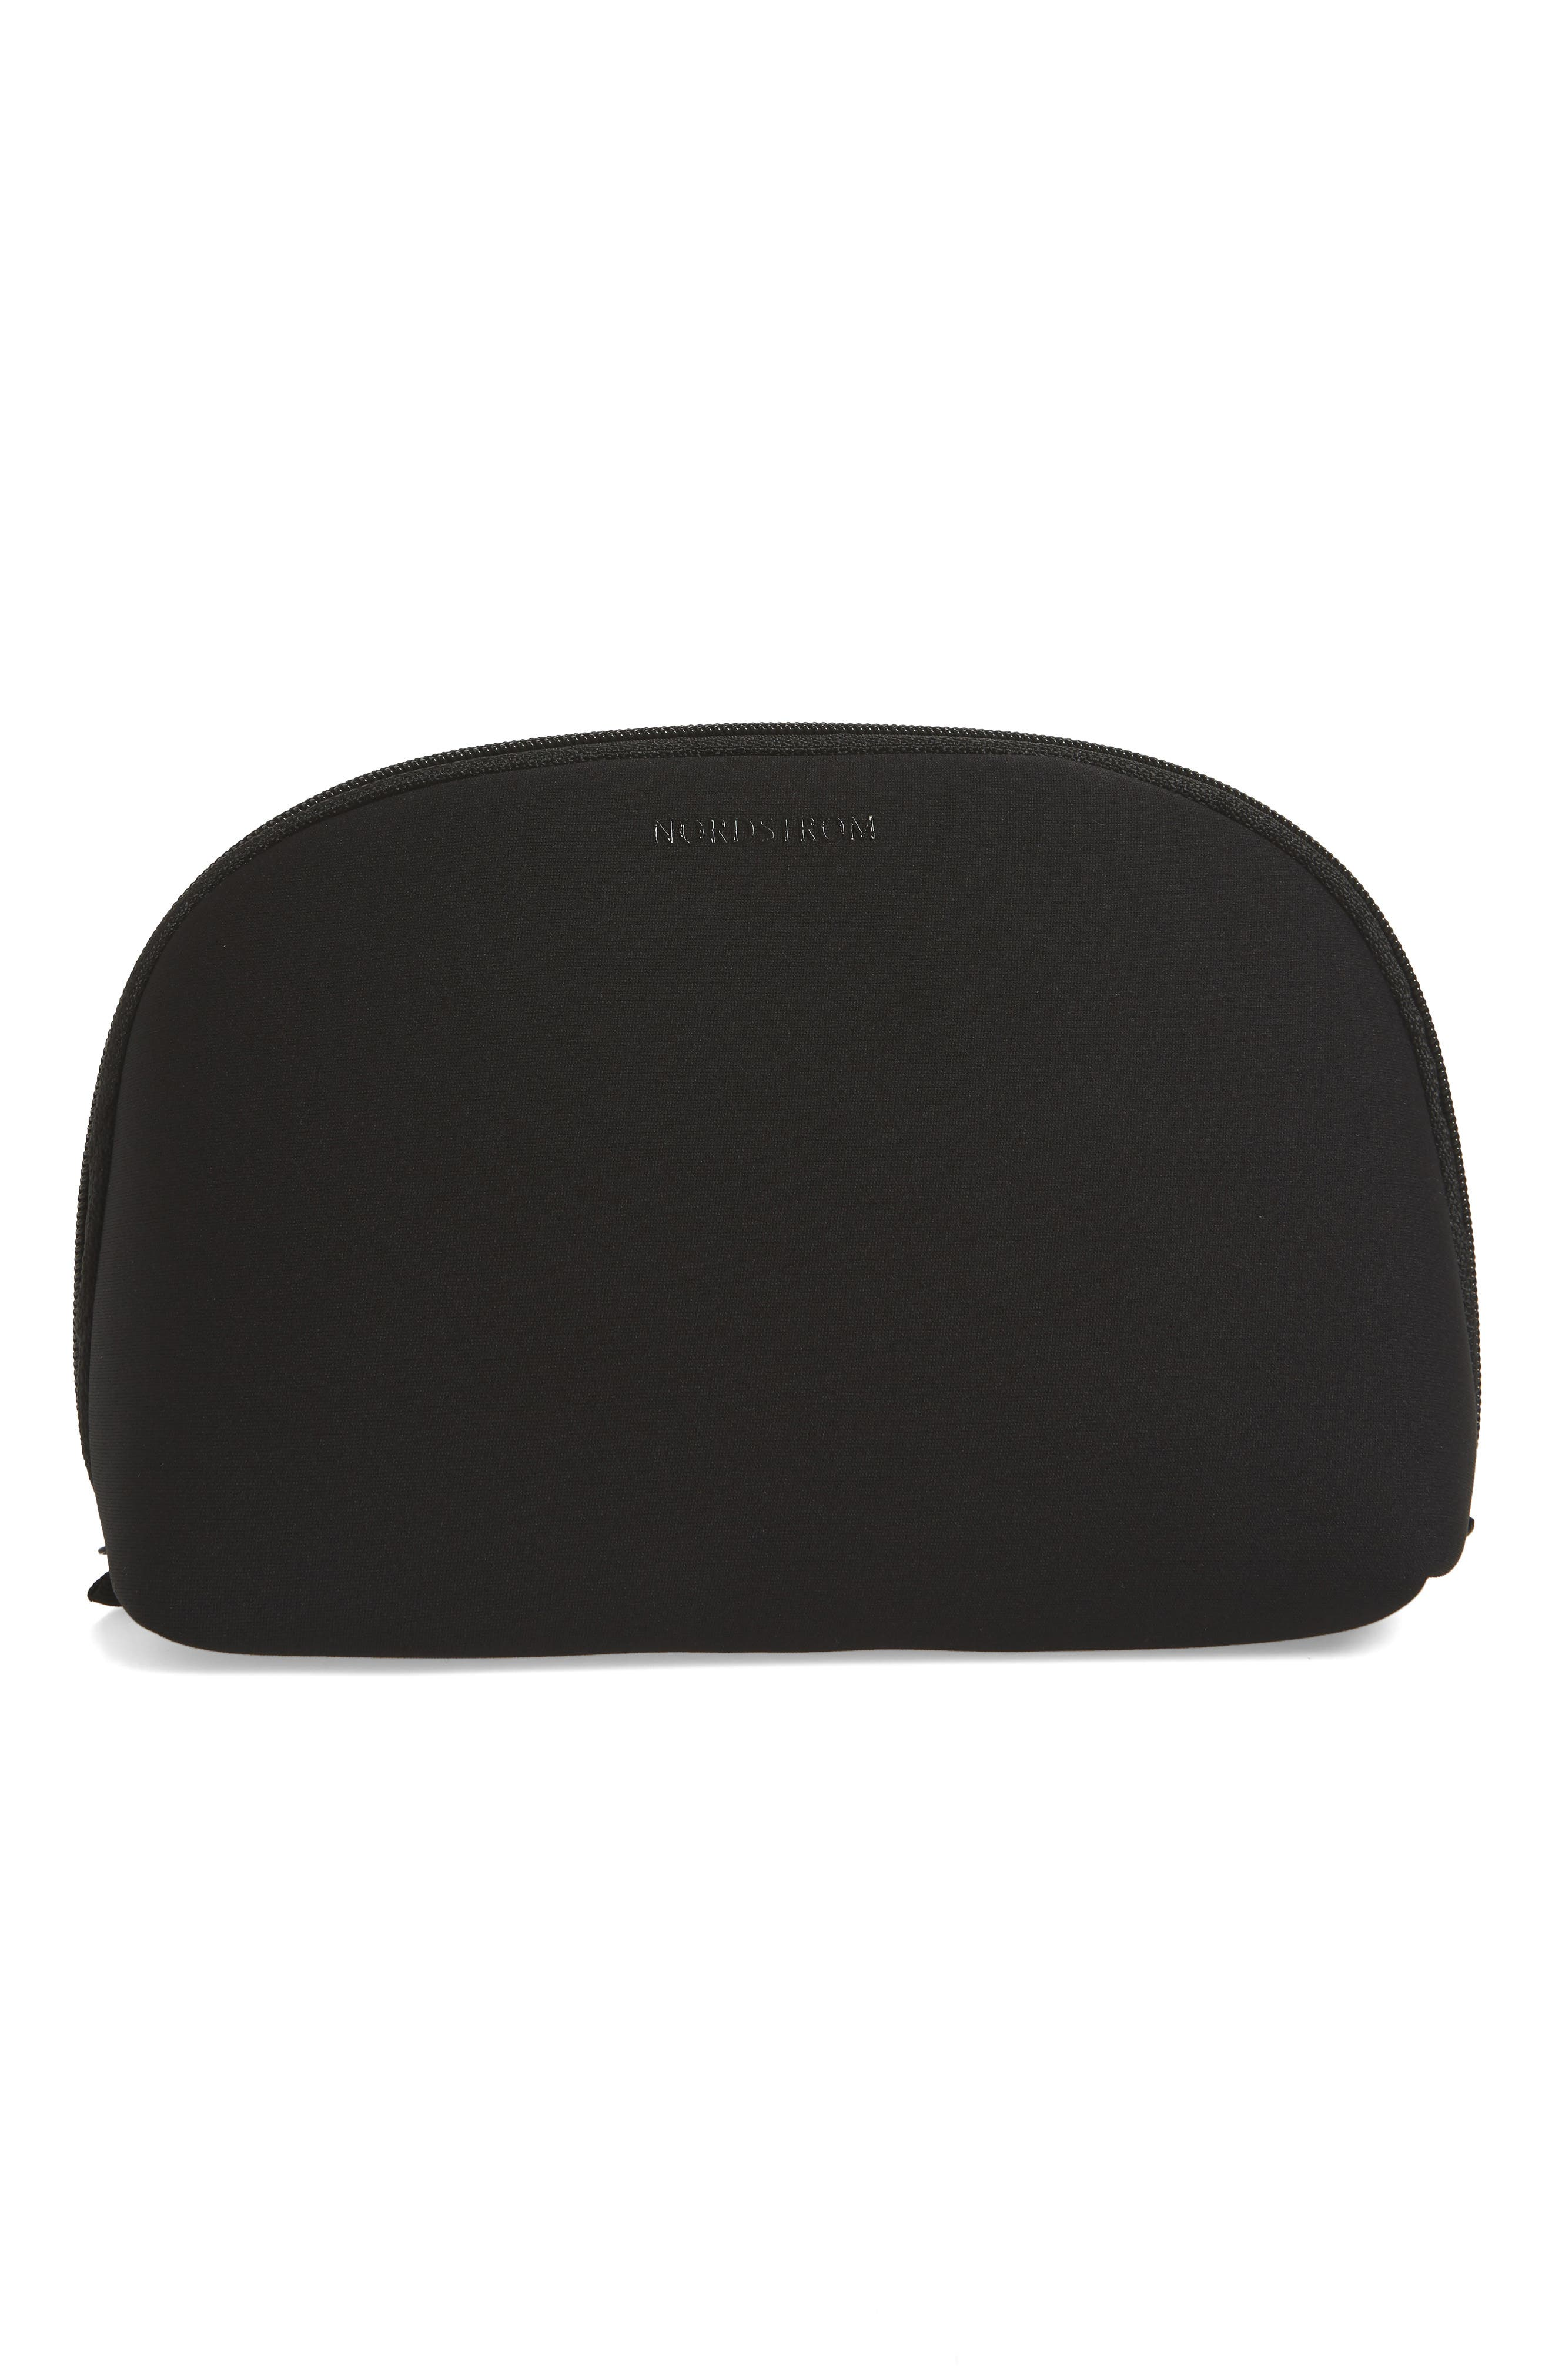 Curved Cosmetic Bag,                         Main,                         color, BLACK